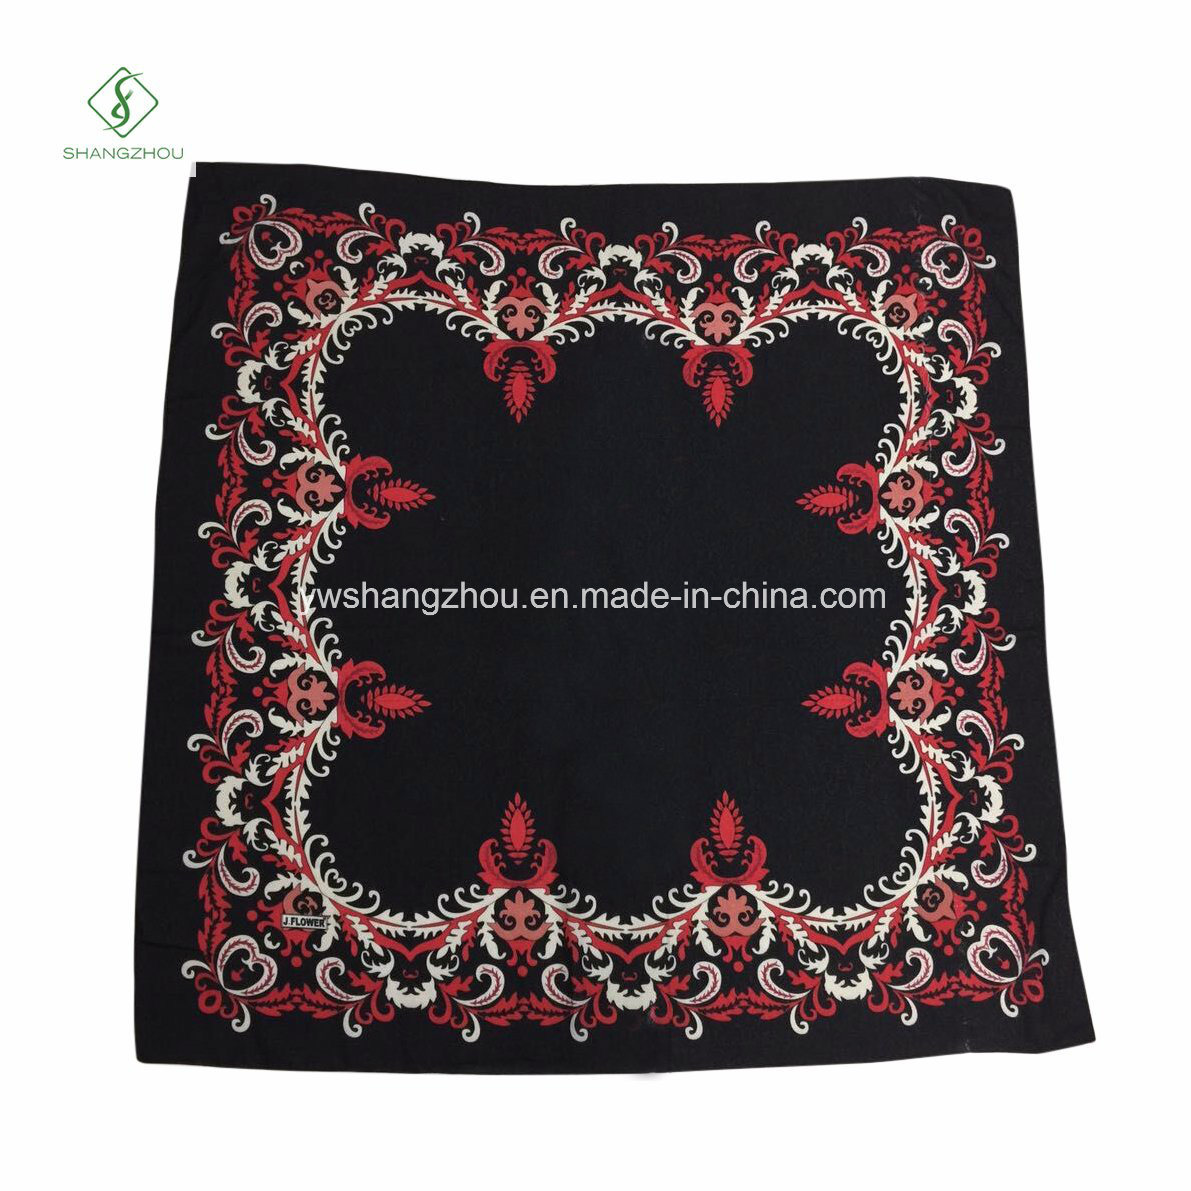 New Fashion Big Square Scarf French Cotton Printed Muslim Hijab